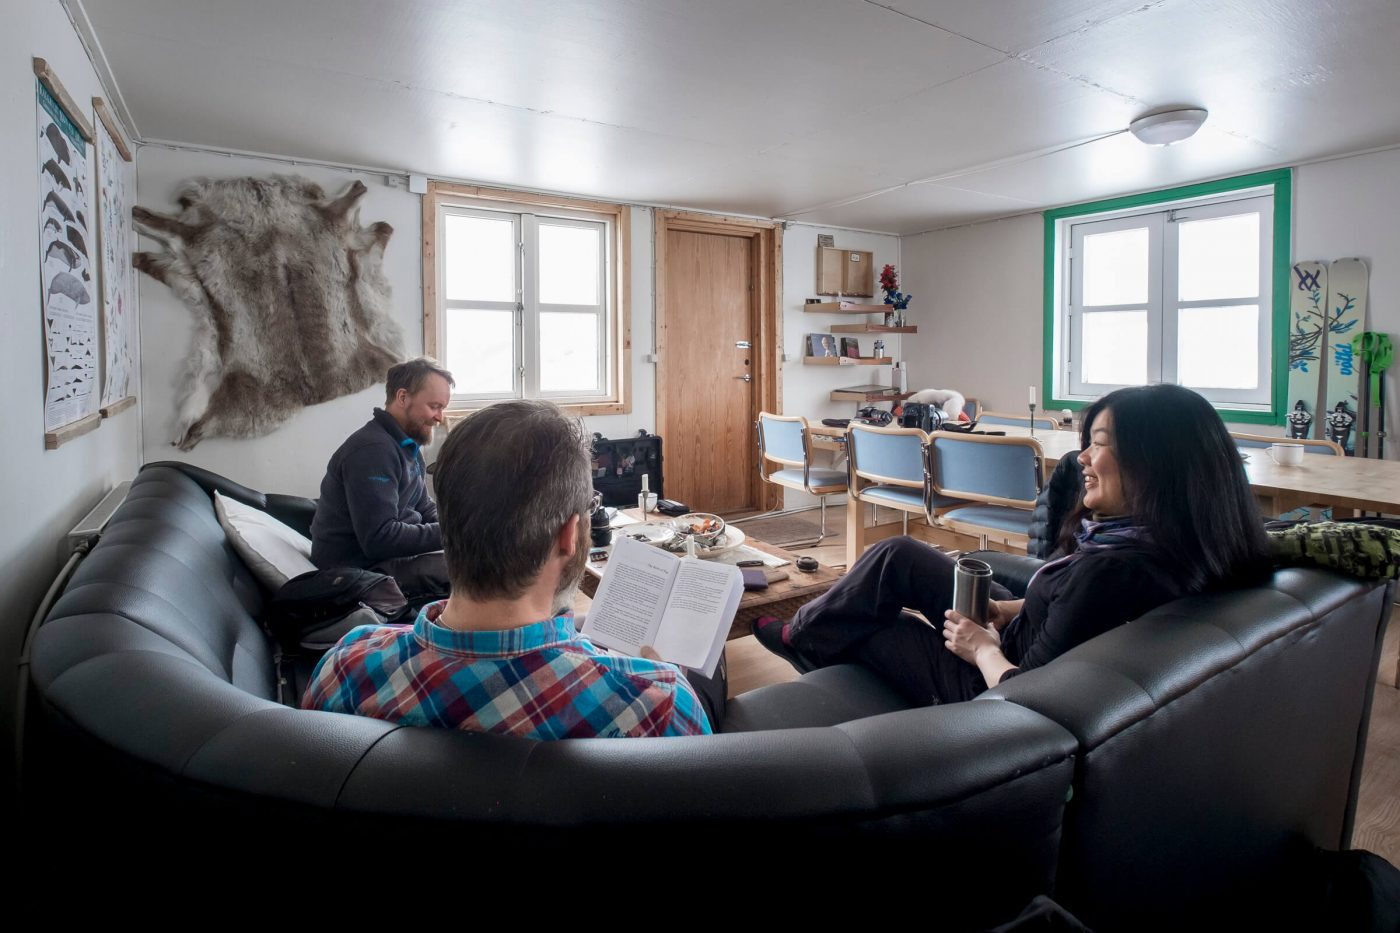 Guests relaxing in couch in lounge and dining area at Kulusuk Hostel in East Greenland. Photo by Icelandic Mountain Guides